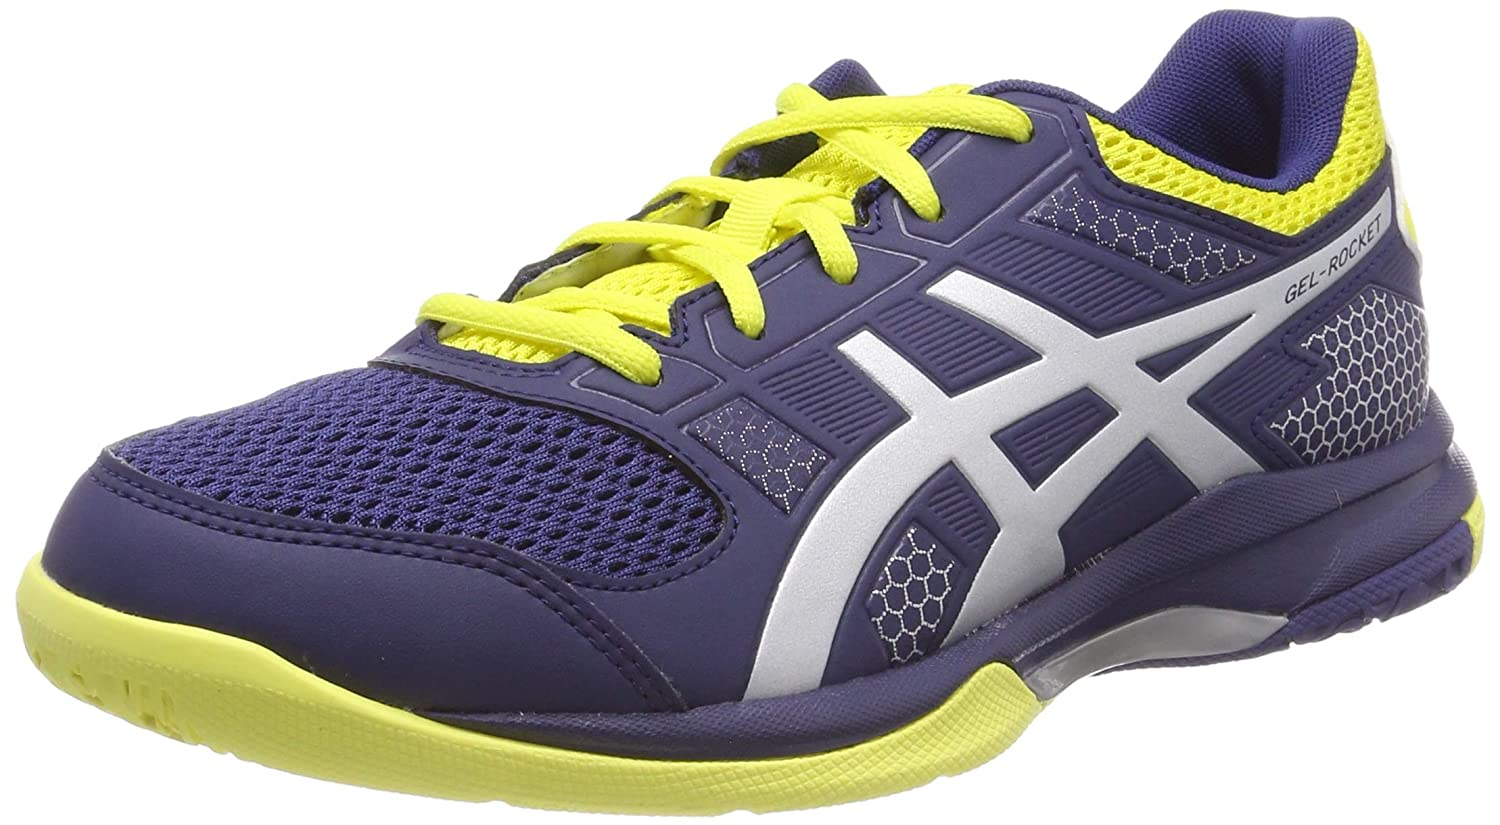 331a2a4f45 ASICS Men's Gel-Rocket 8 Volleyball Shoes: Amazon.co.uk: Shoes & Bags